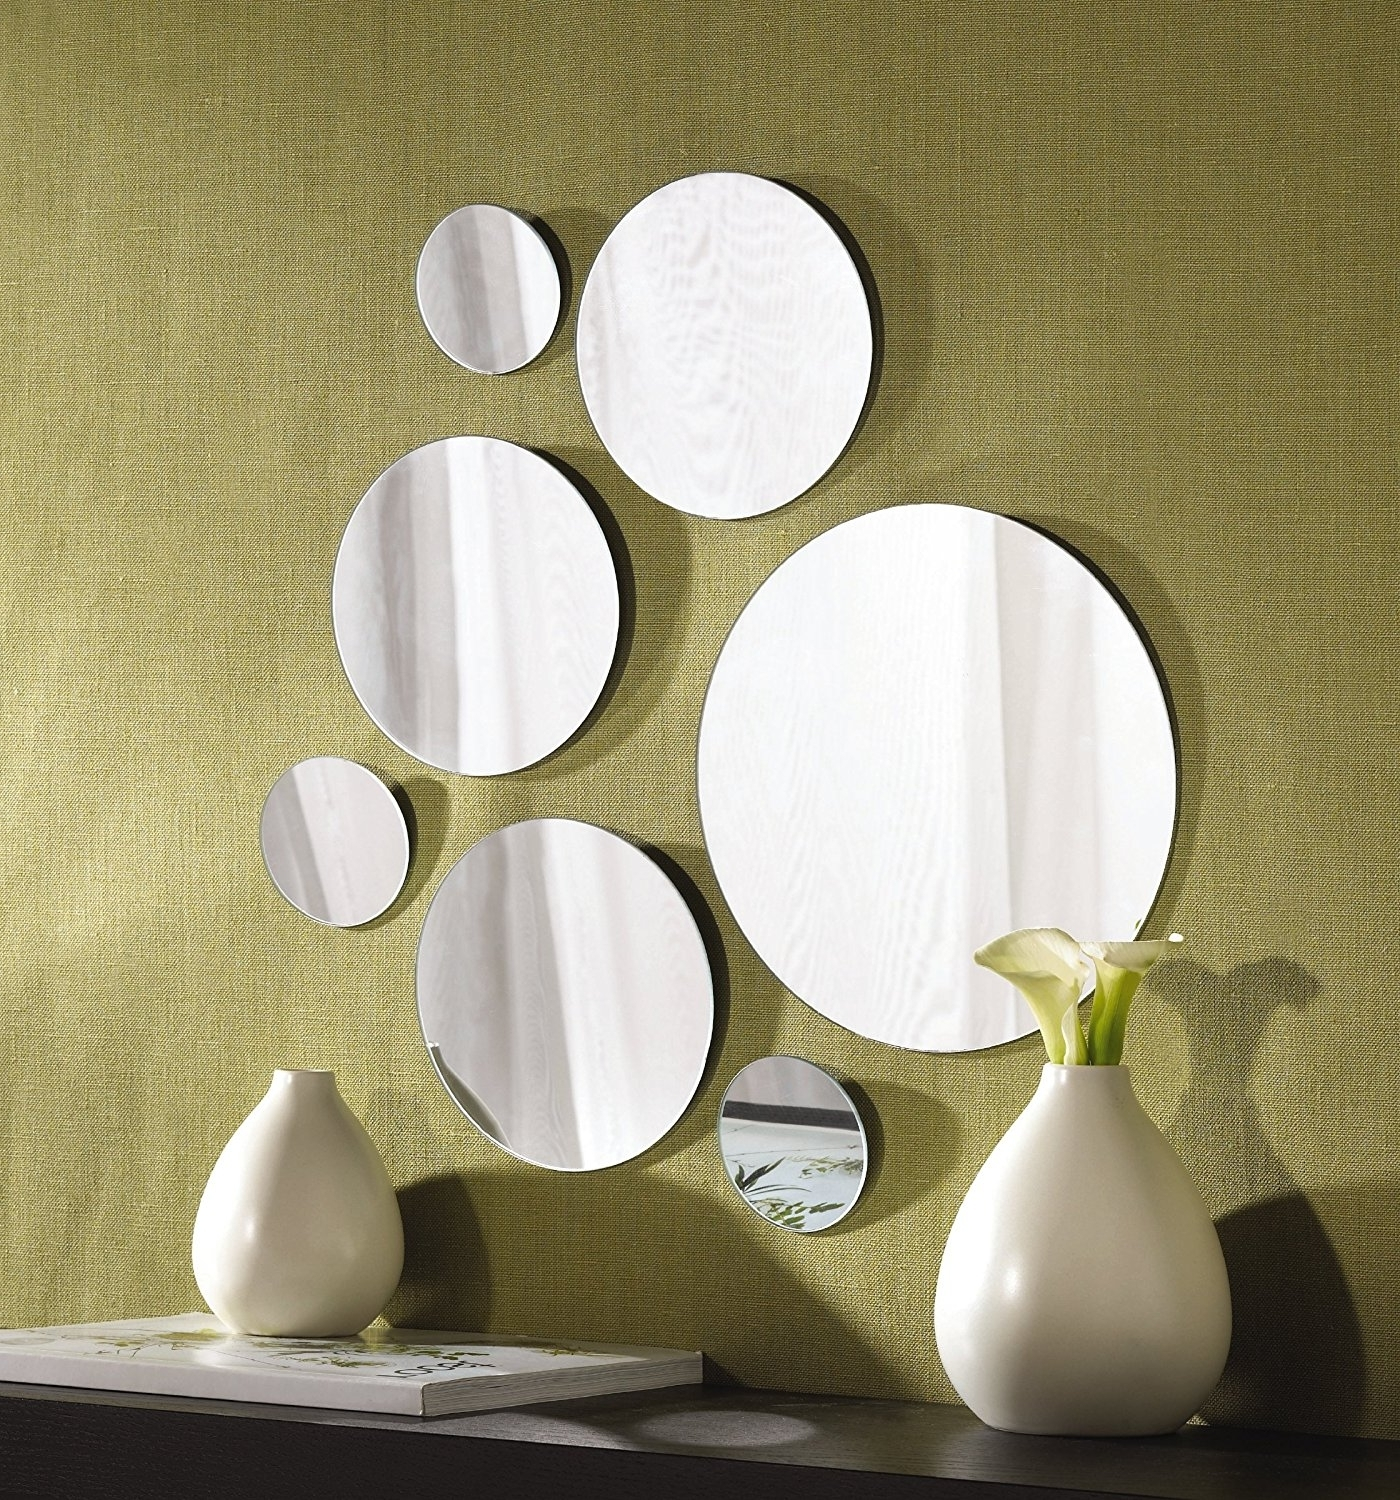 Most Recent Small Round Mirrors Wall Art Inside Amazon: Elements Round Wall Mount Mirror, Set Of 7, Assorted (View 6 of 15)